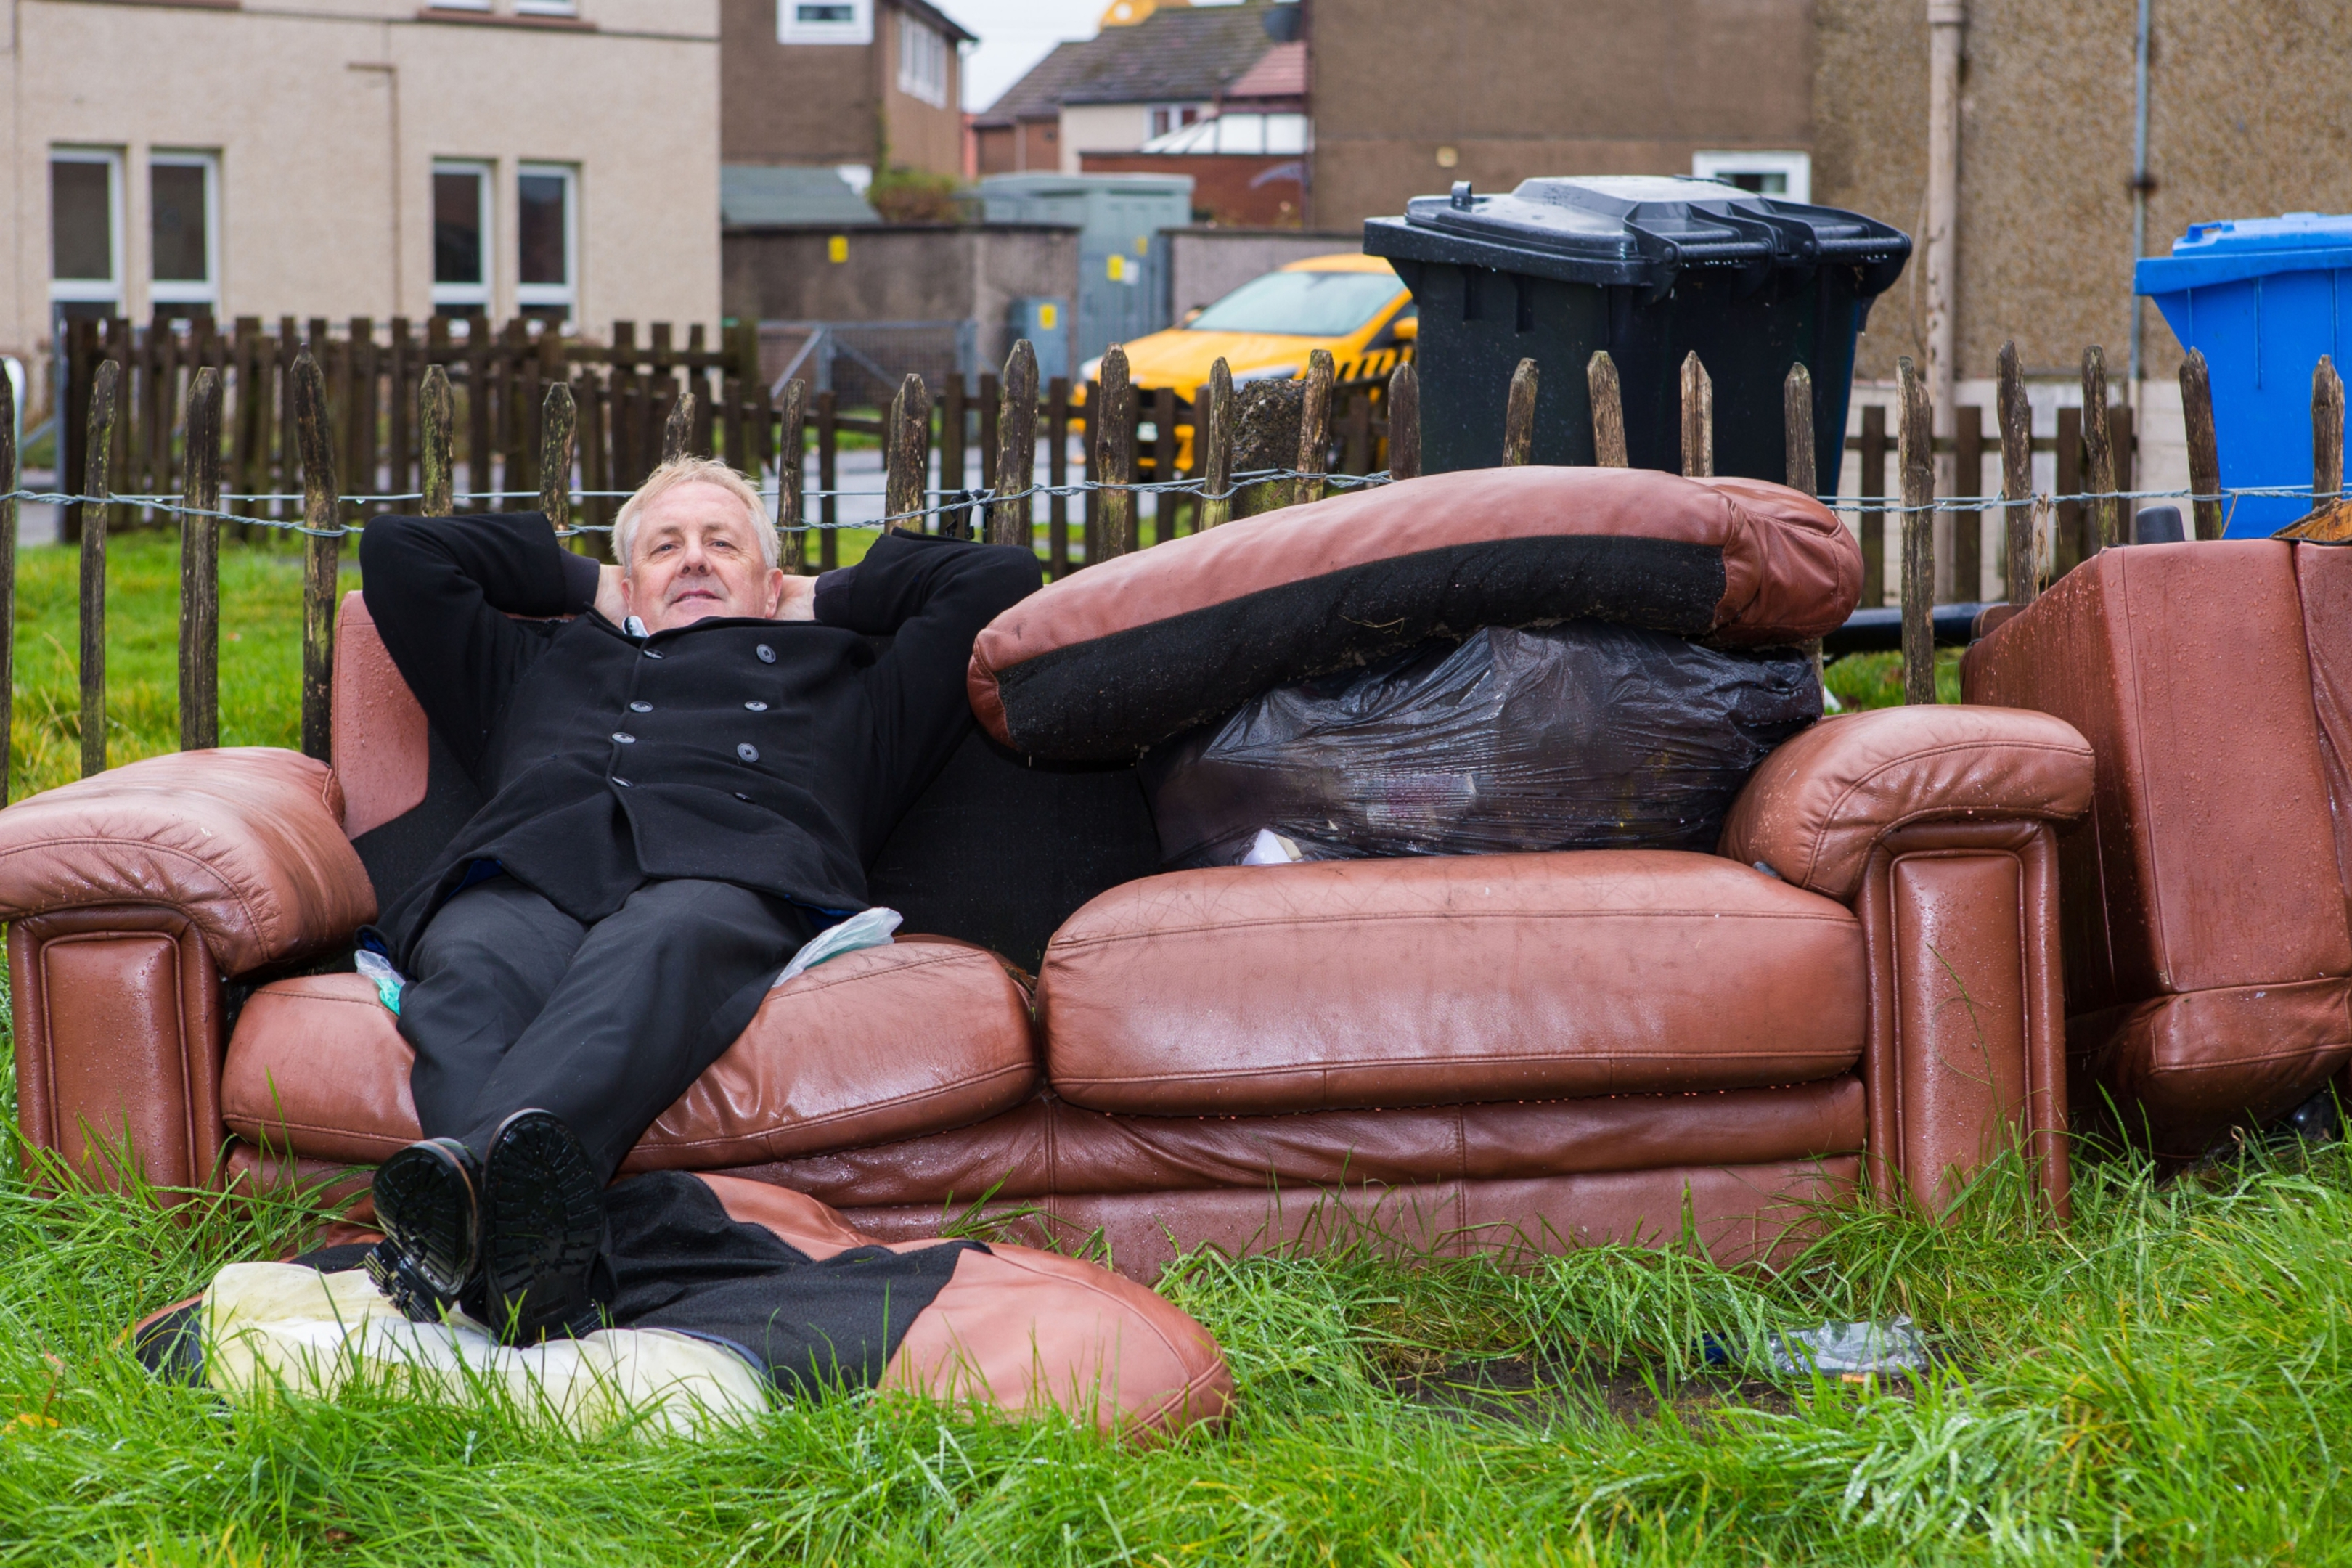 Councillor John O'Brien is trying to get Fife Council to uplift unsightly couches and other dumped in peoples gardens.